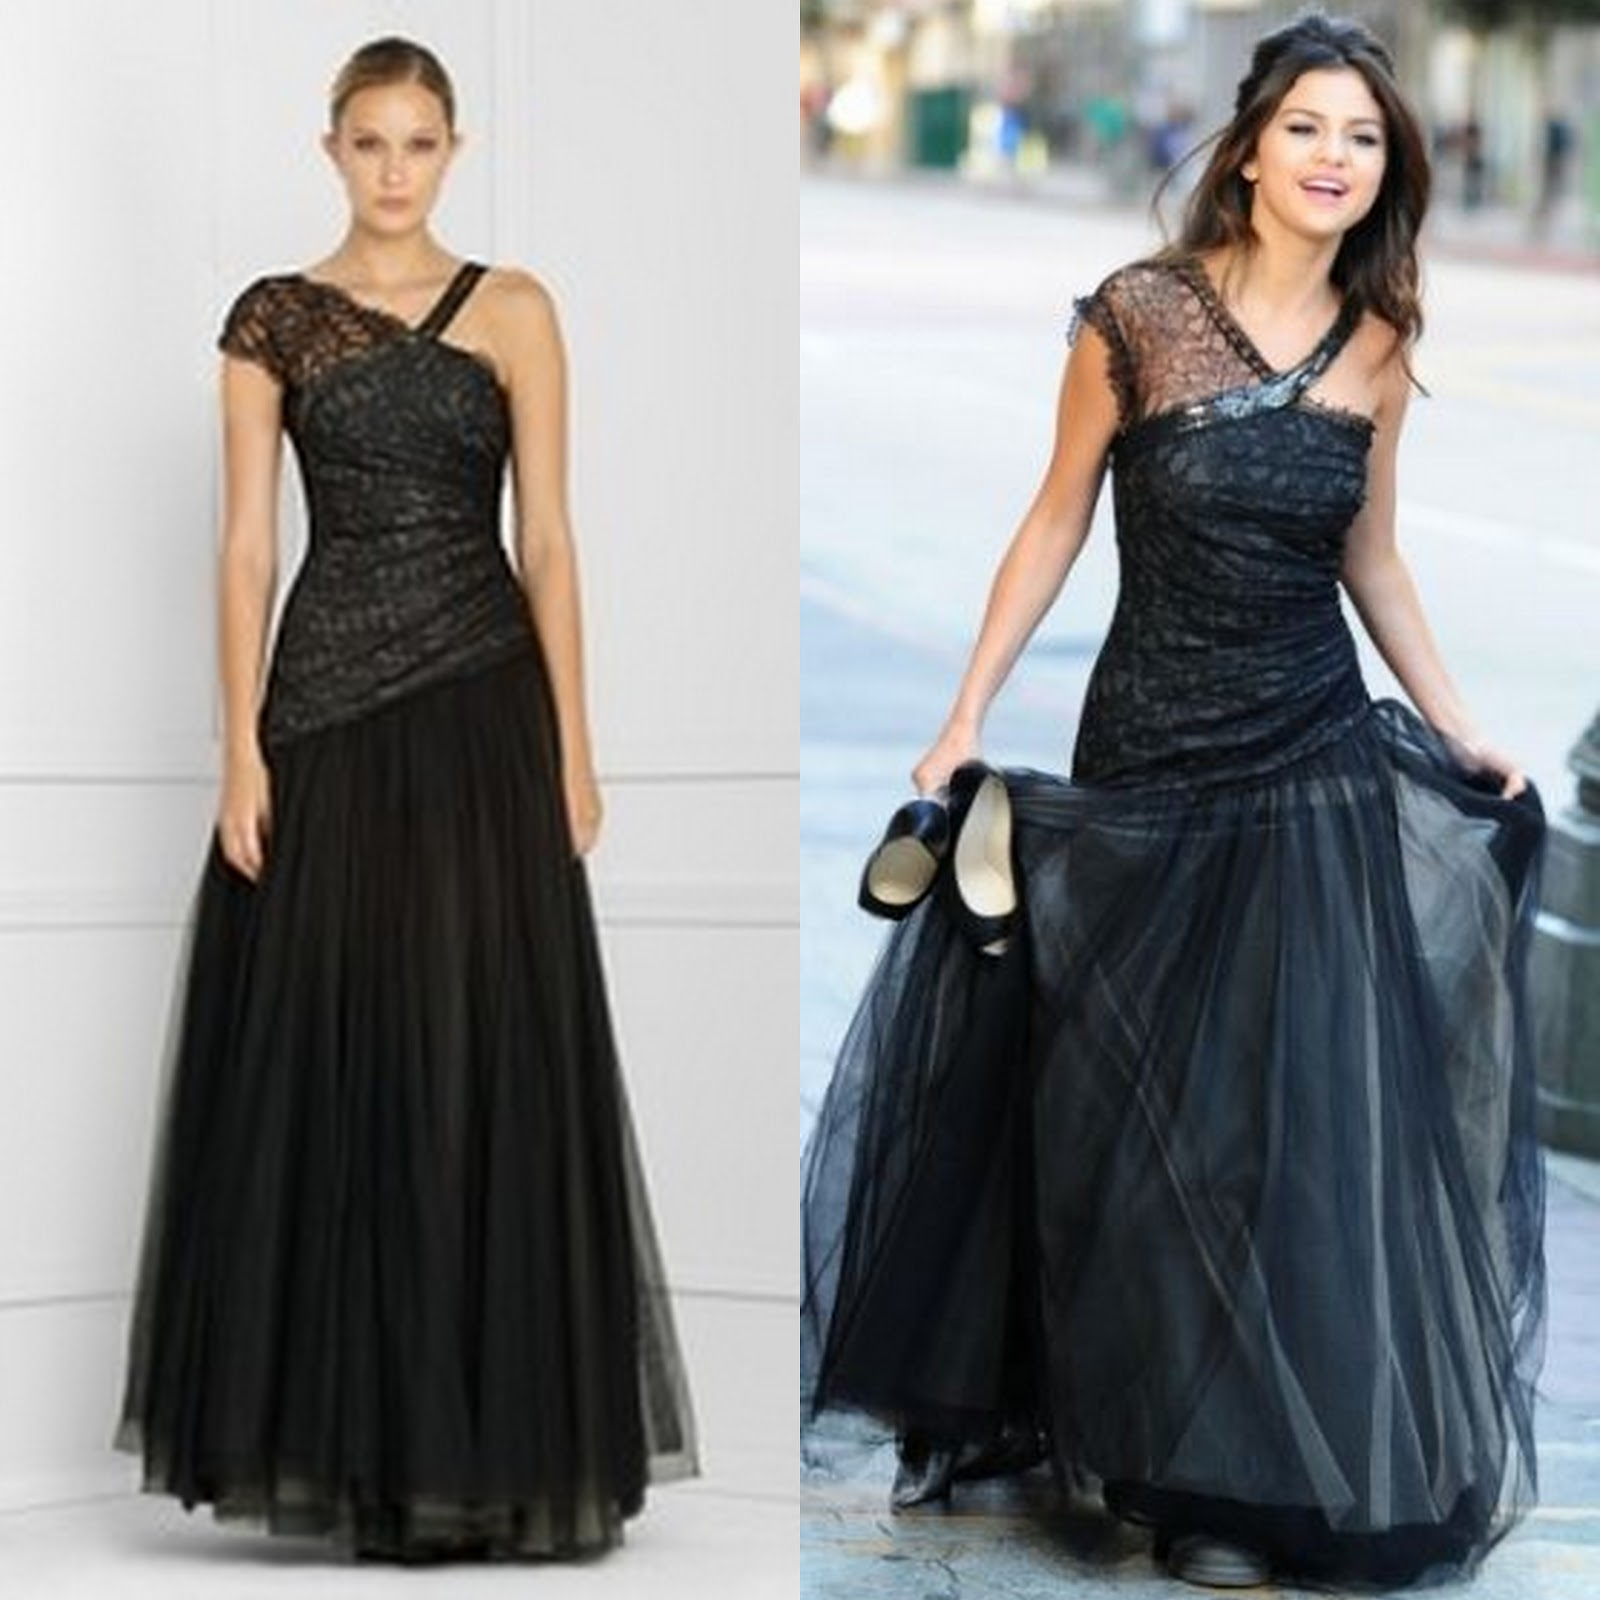 Frills and Thrills: Selena Gomez in BCBG Evening Gown